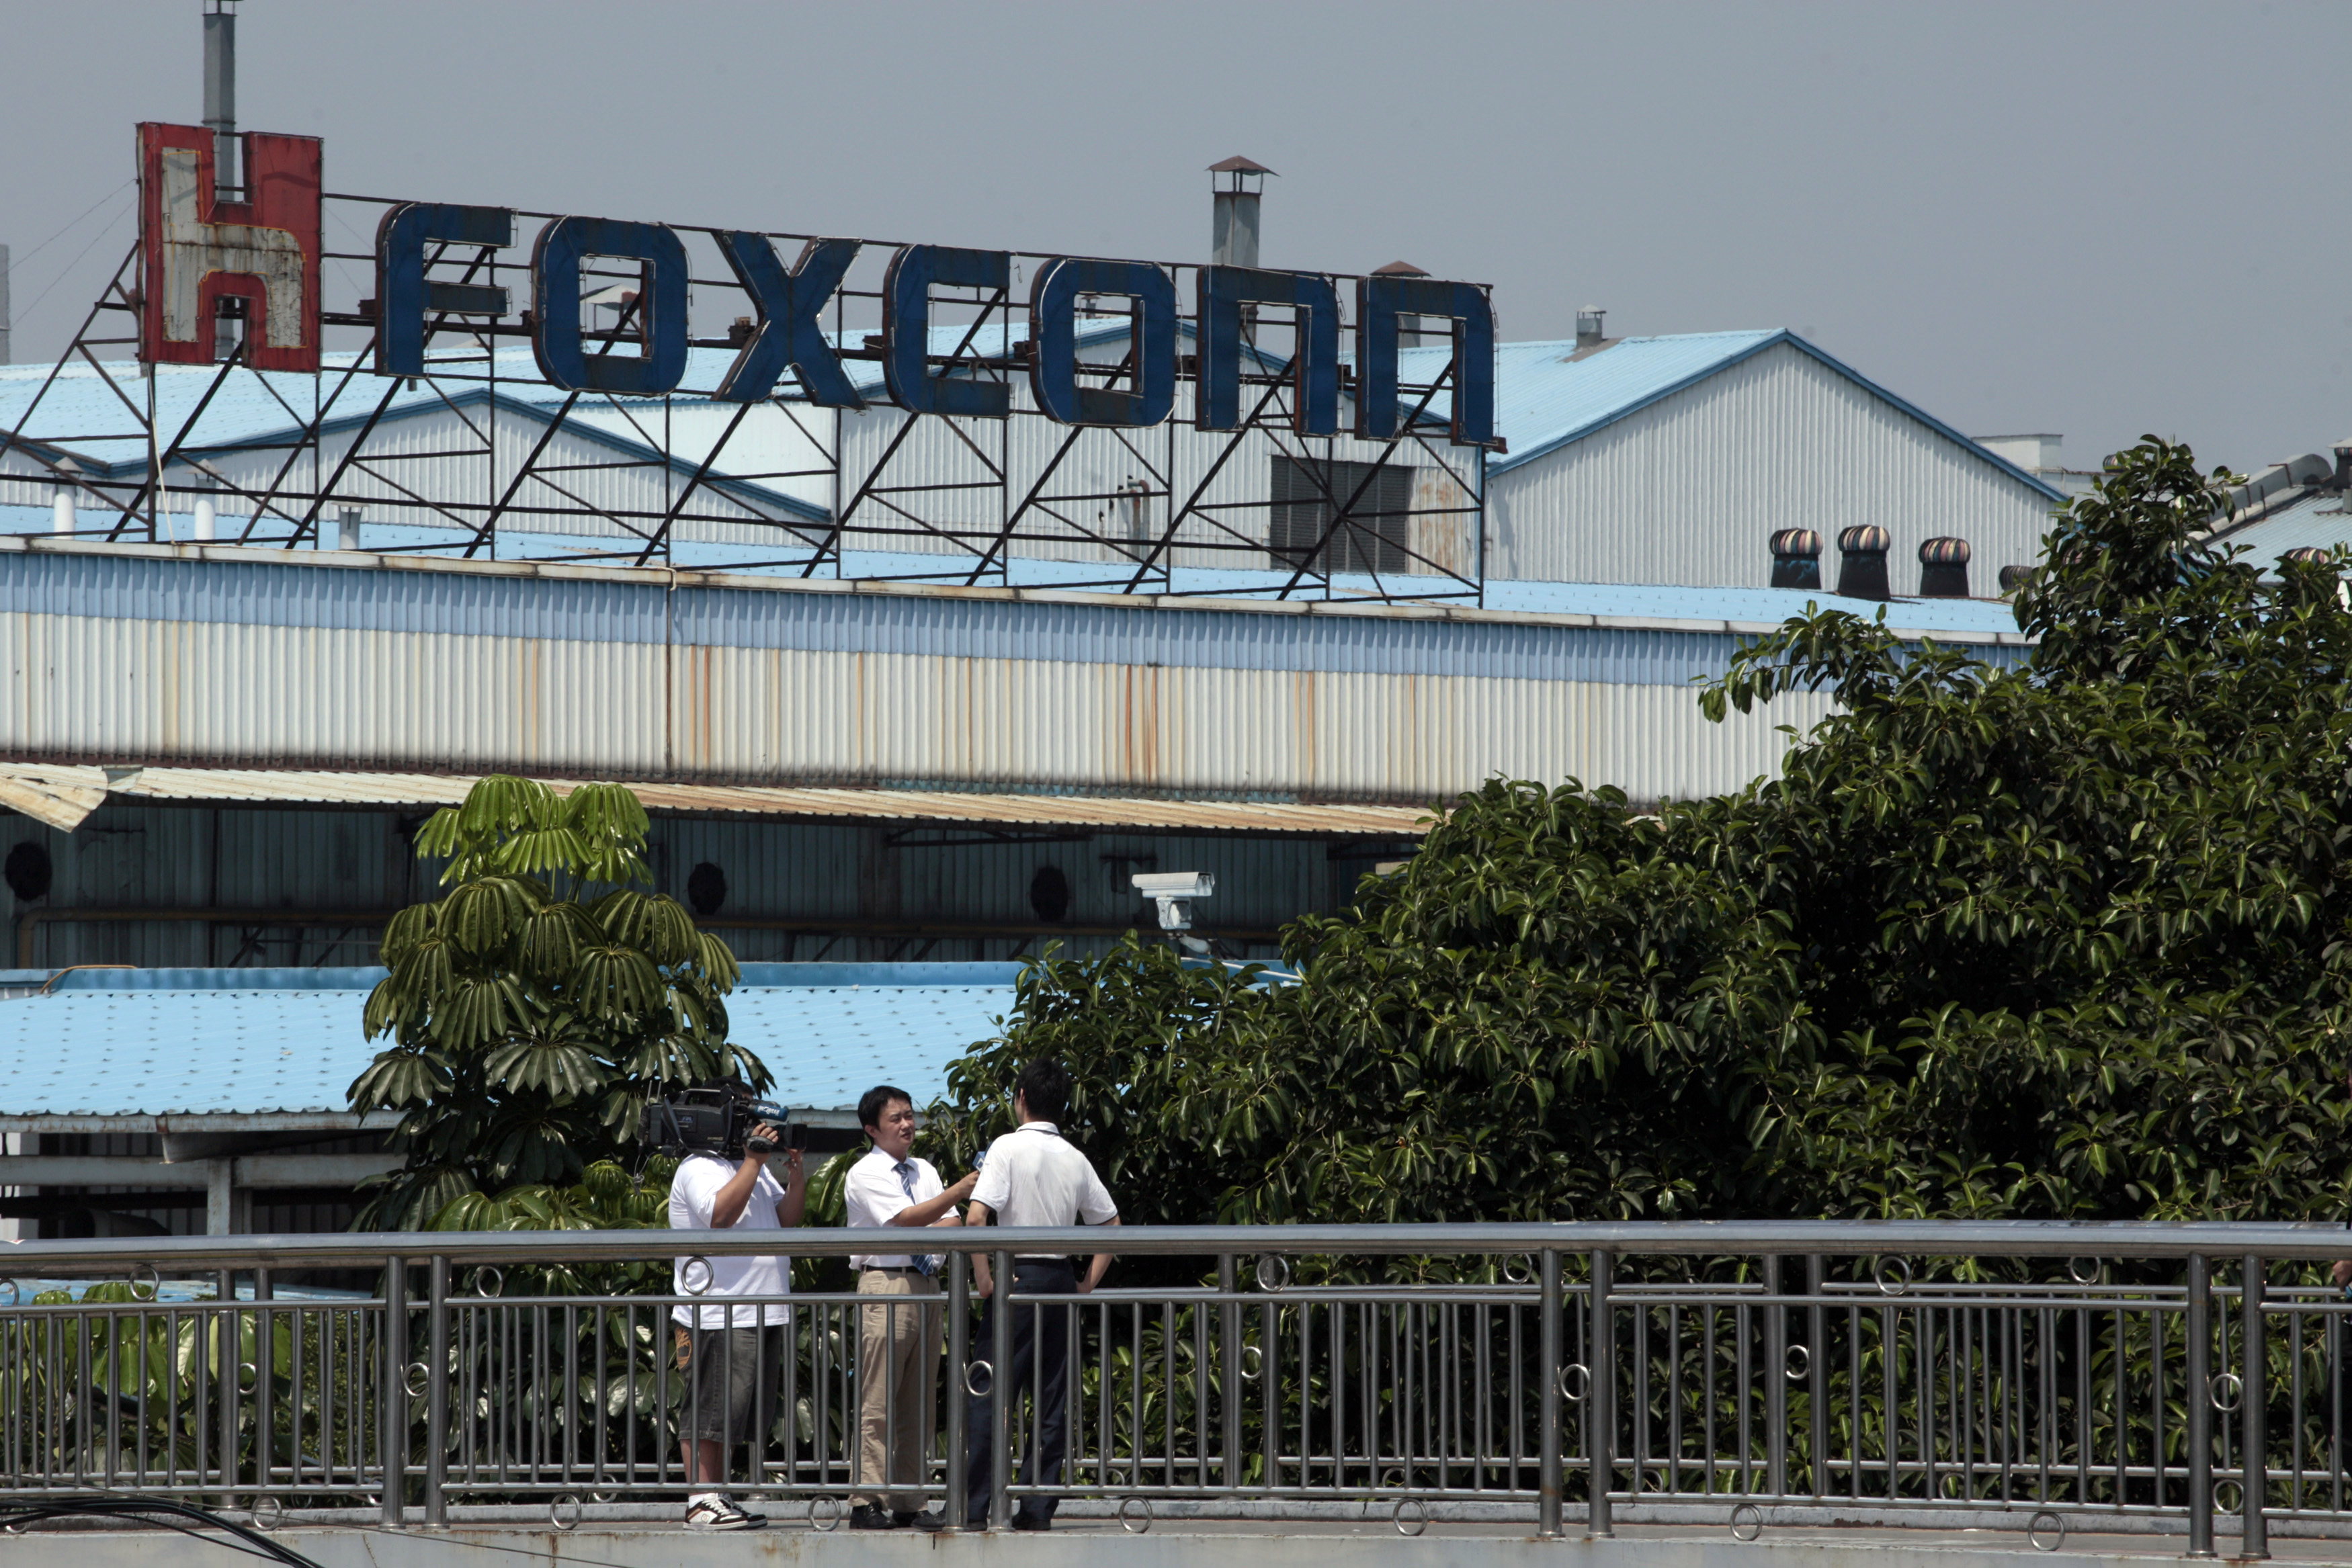 Employees of Foxconn speak to reporters outside one of the tech firm's factories in the southern Chinese city of Shenzhen May 25, 2010. An employee of Foxconn died early on Tuesday after falling from a building in southern city of Shenzhen, state media reported, the ninth such death at the firm's manufacturing hub this year. REUTERS/Tyrone Siu (CHINA - Tags: BUSINESS EMPLOYMENT SCI TECH DISASTER)